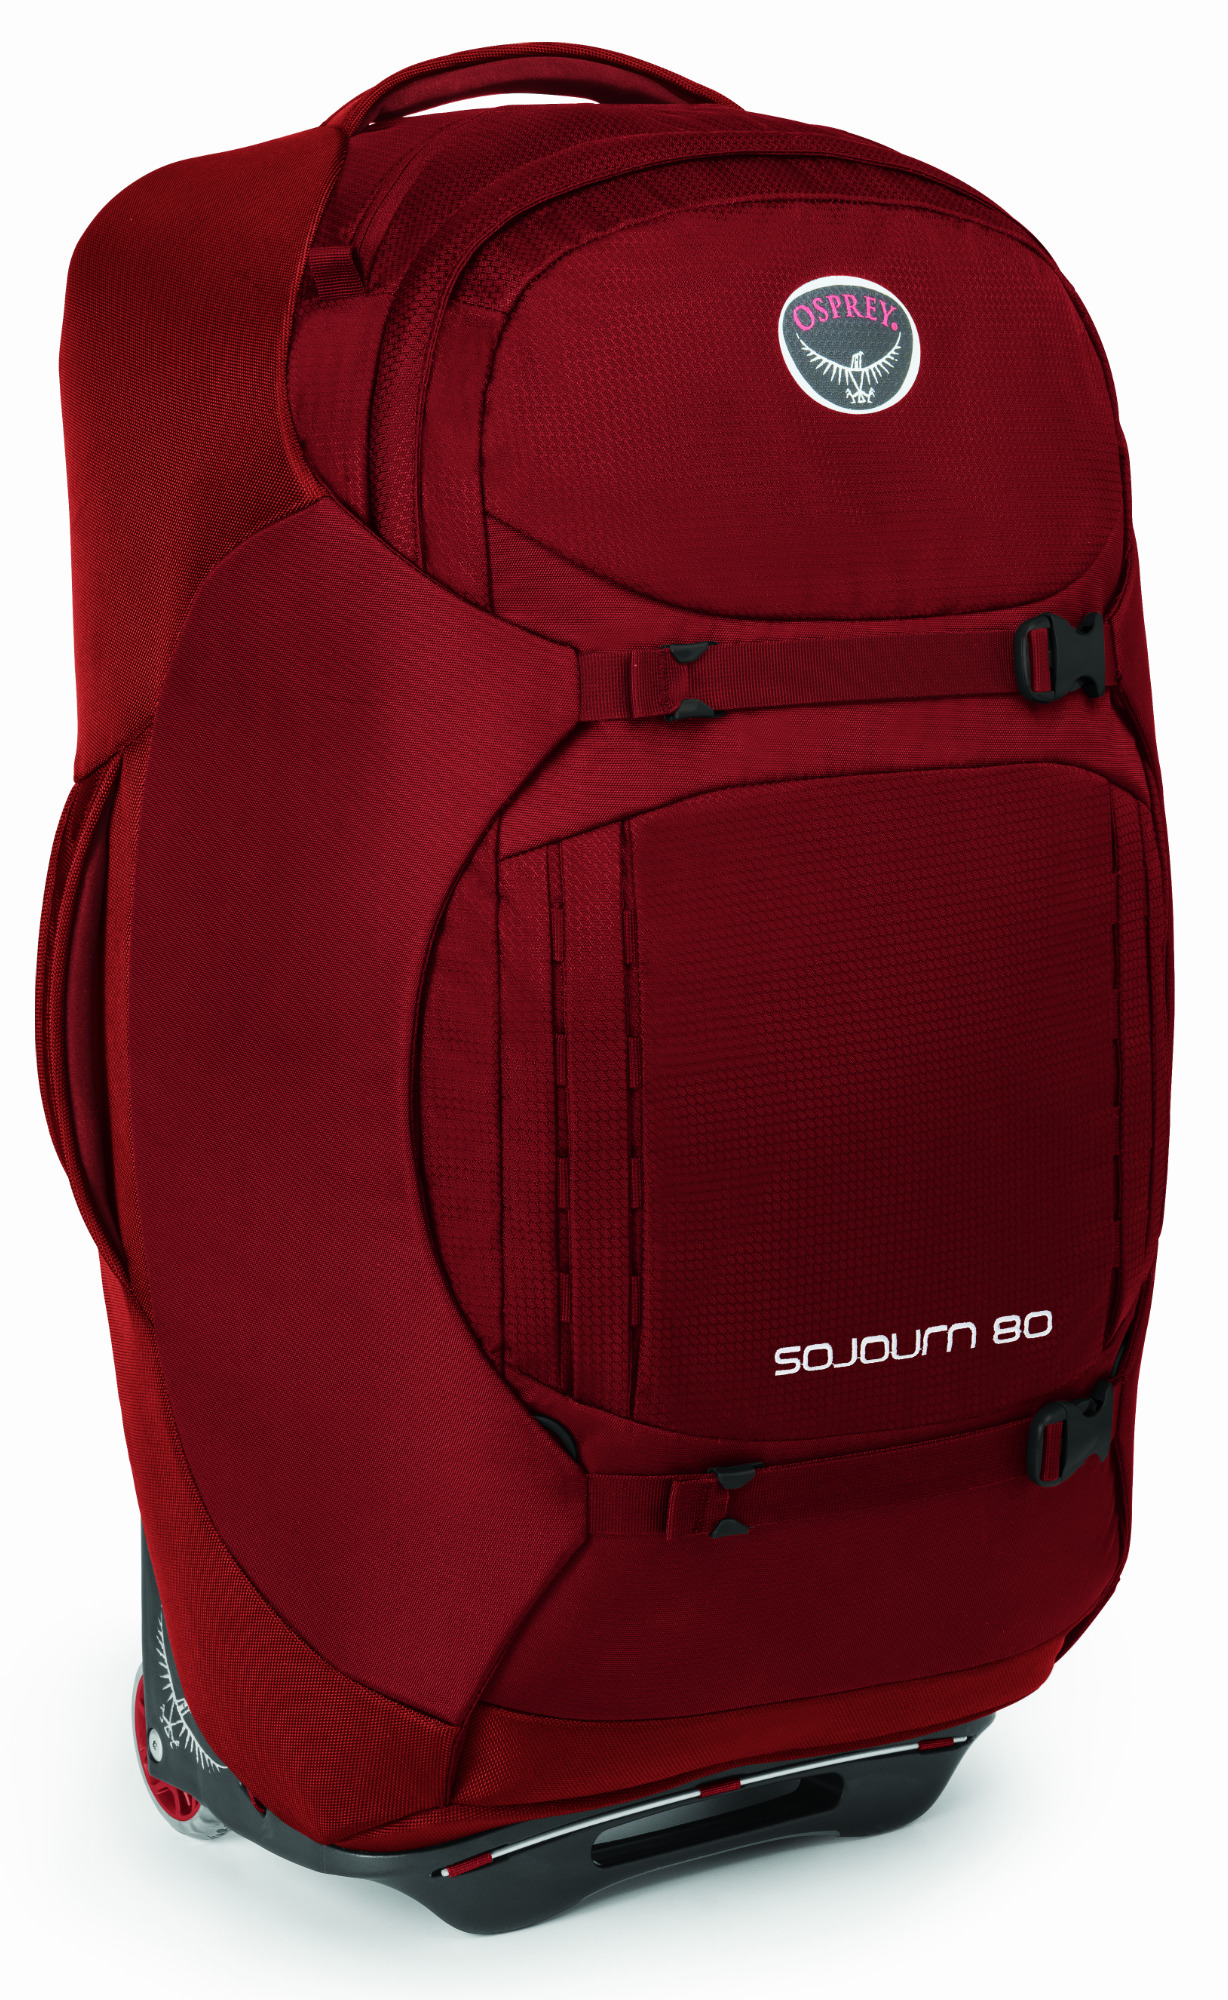 d2df98f57 Osprey Sojourn 28/80 L Pack | 5 Star Rating w/ Free Shipping